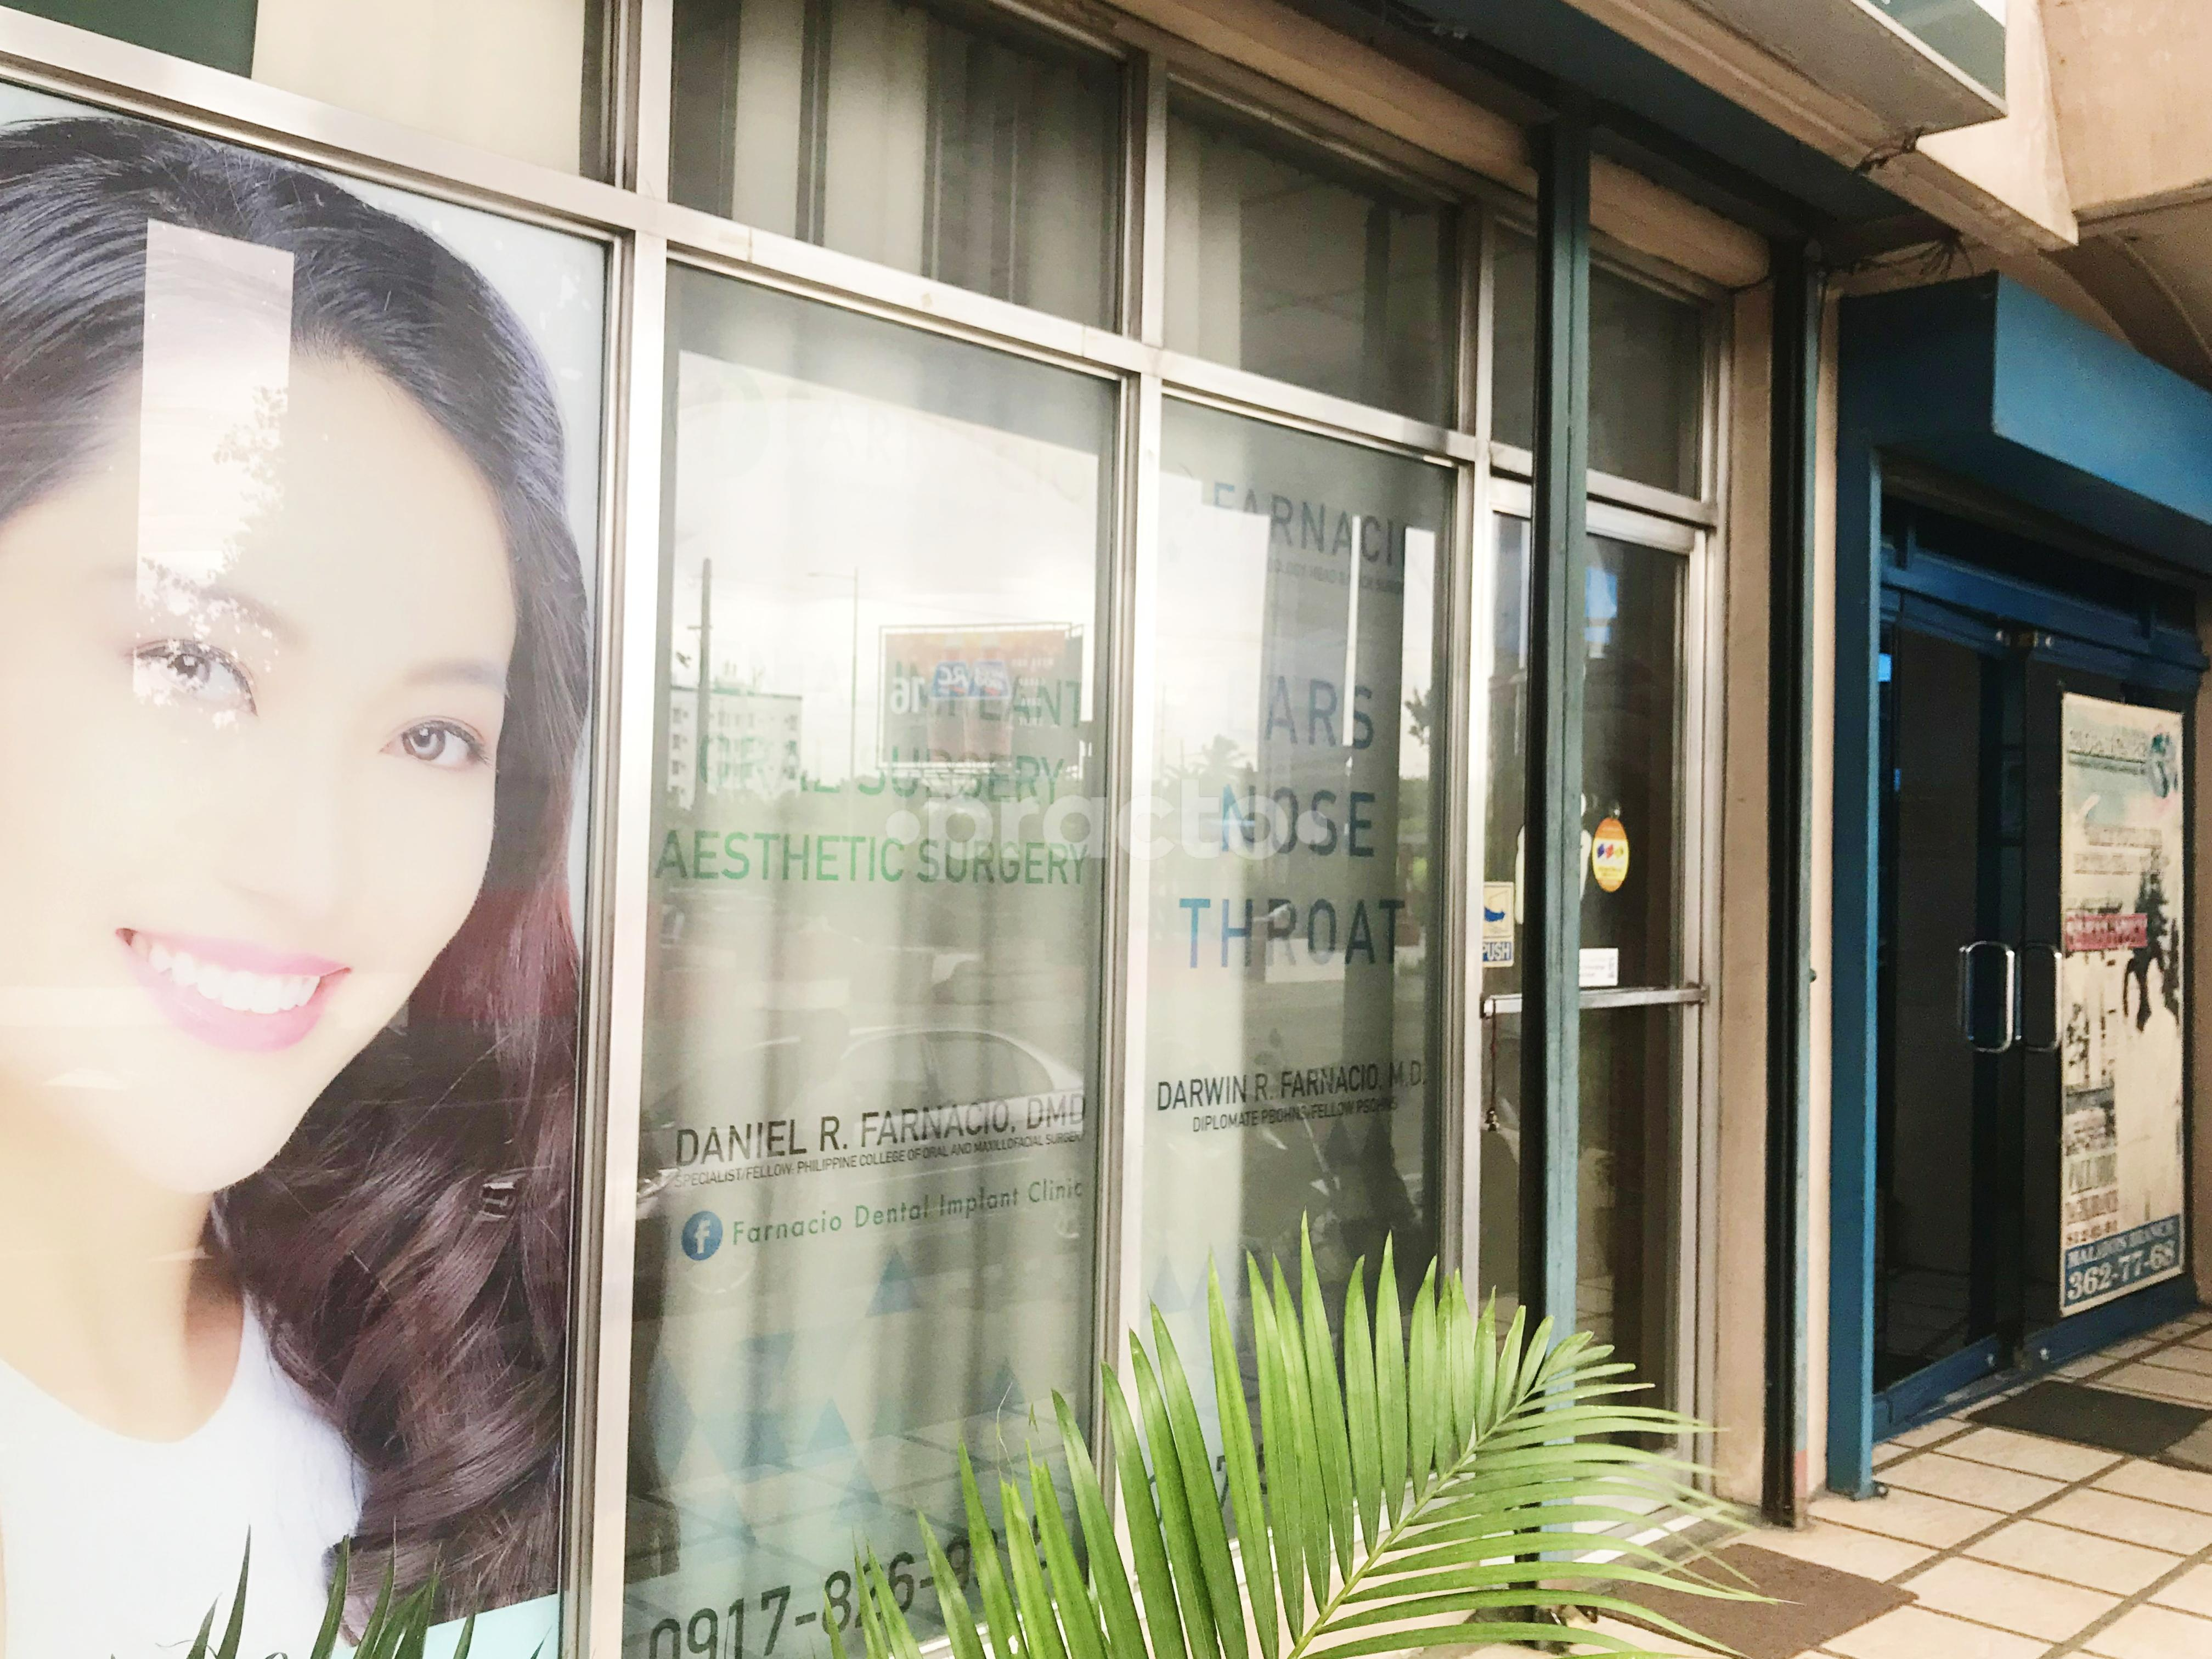 Best Dental Clinics in Taguig - Book Appointment, View Reviews